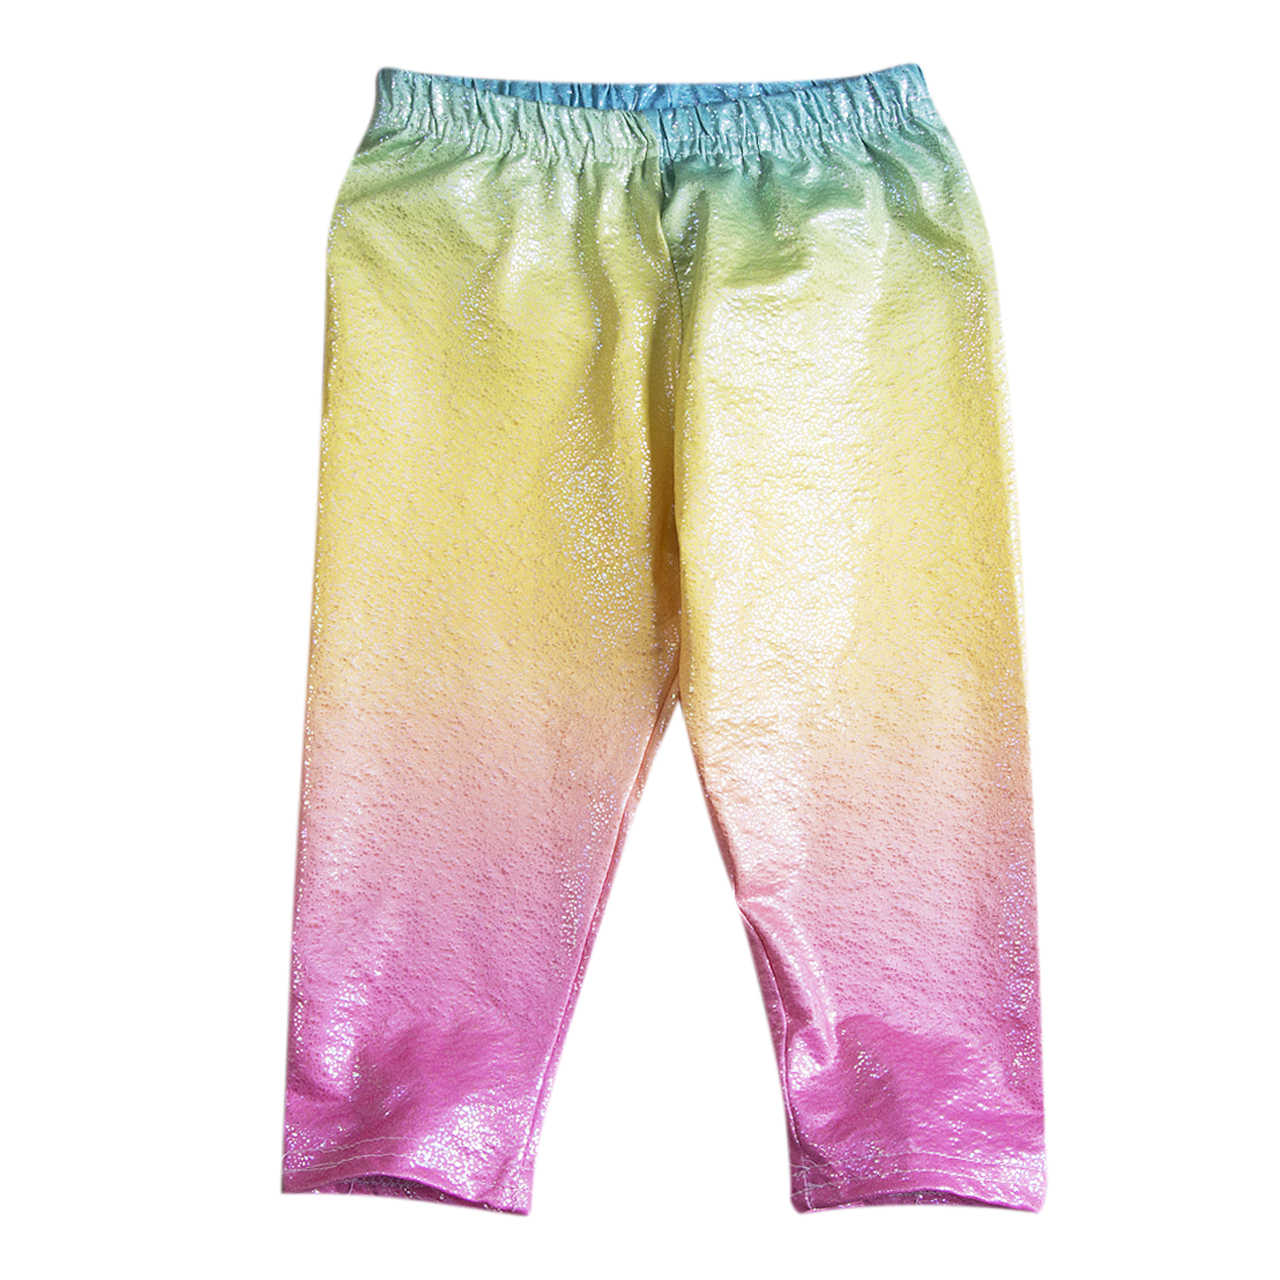 2018 New Toddler Kids Girl Baby Sequin Leggings Shinny Colorful Pants Trousers Clothes